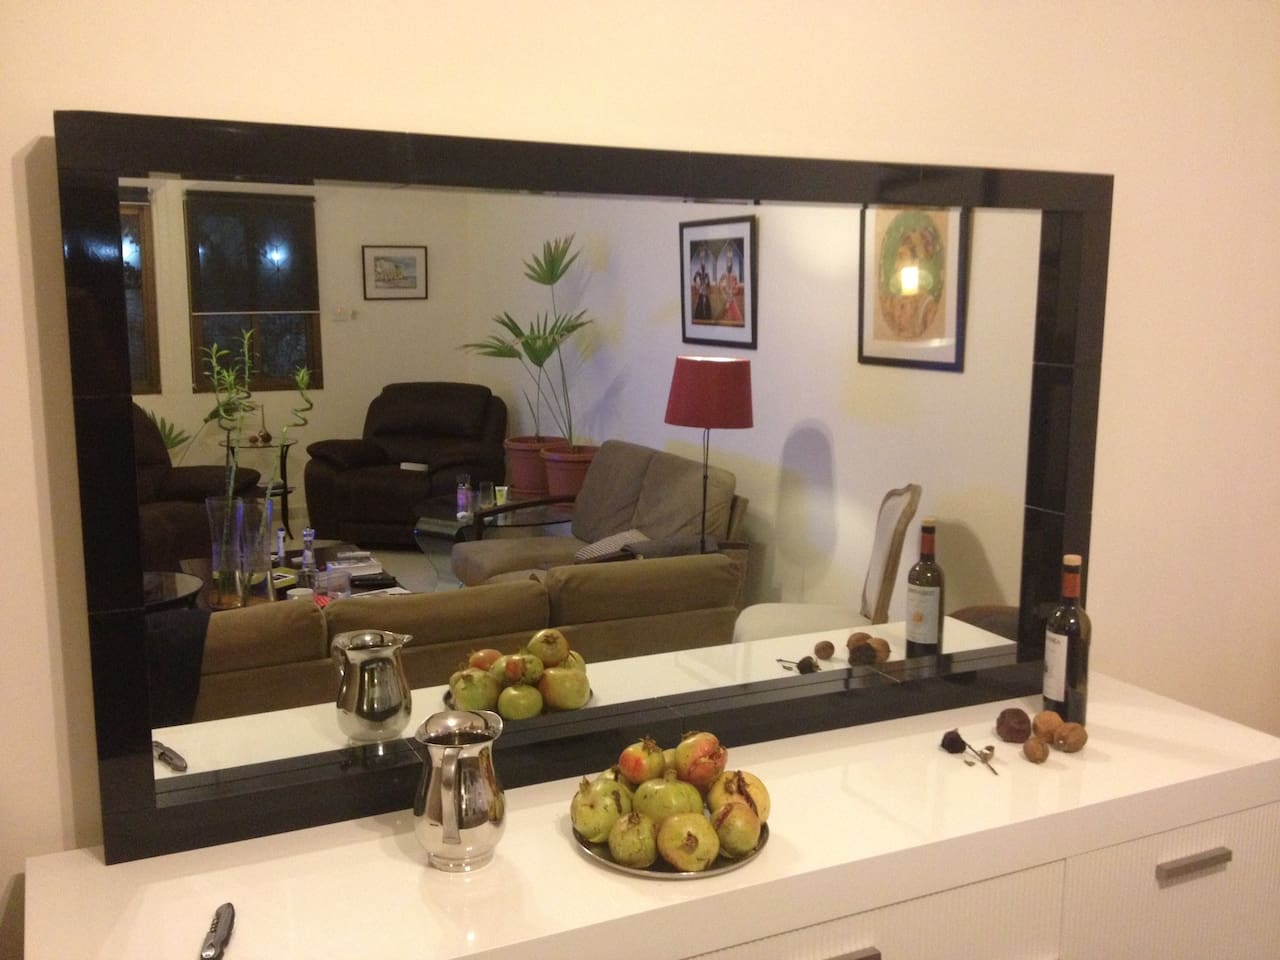 Welcome to use the living area for relaxing, having a drink or watching news